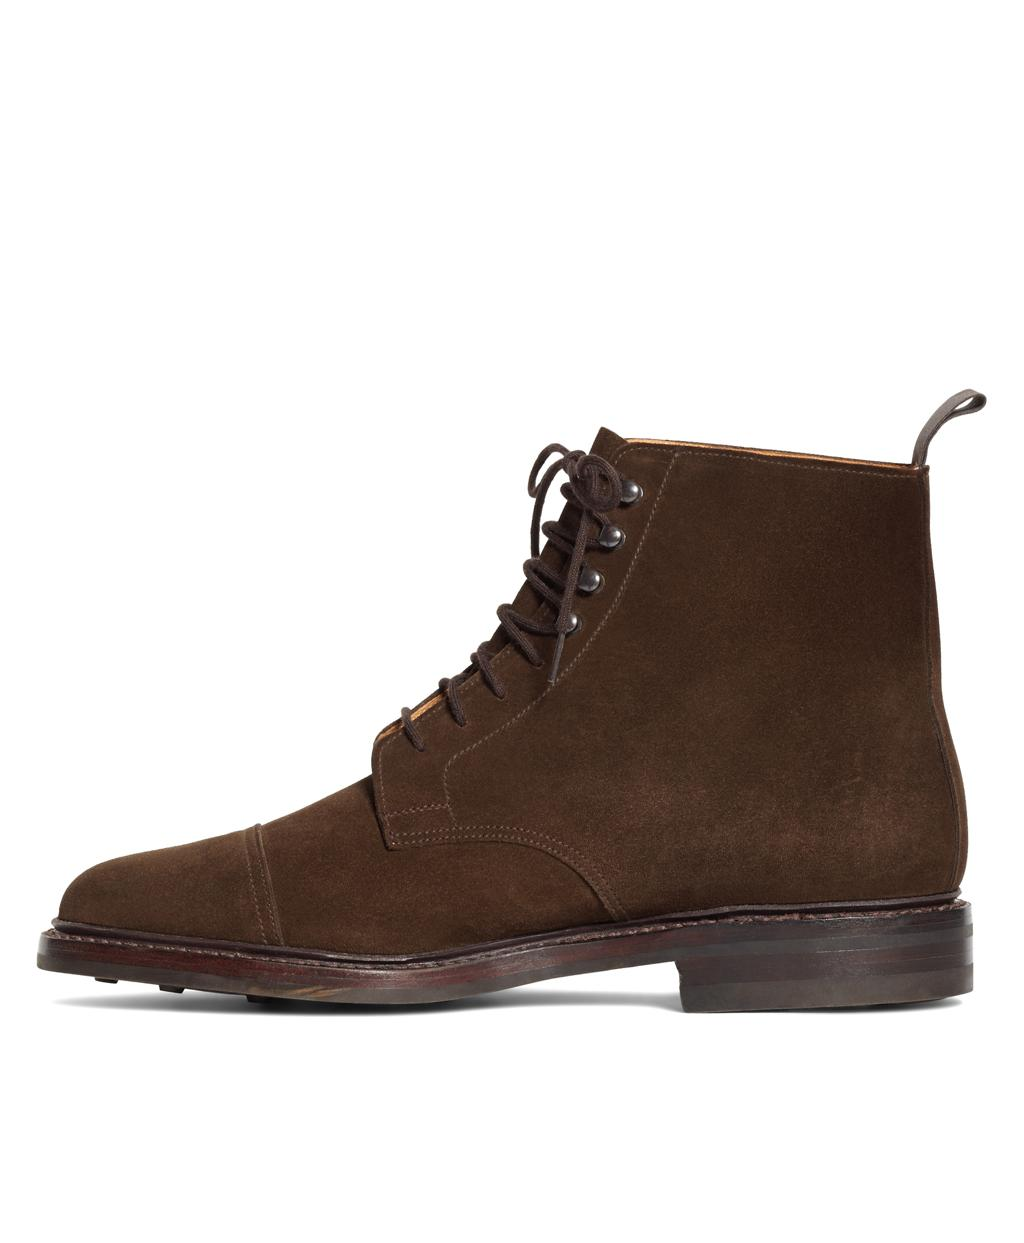 879cefe3e3e Lyst - Brooks Brothers Peal   Co. Derby Boots in Brown for Men